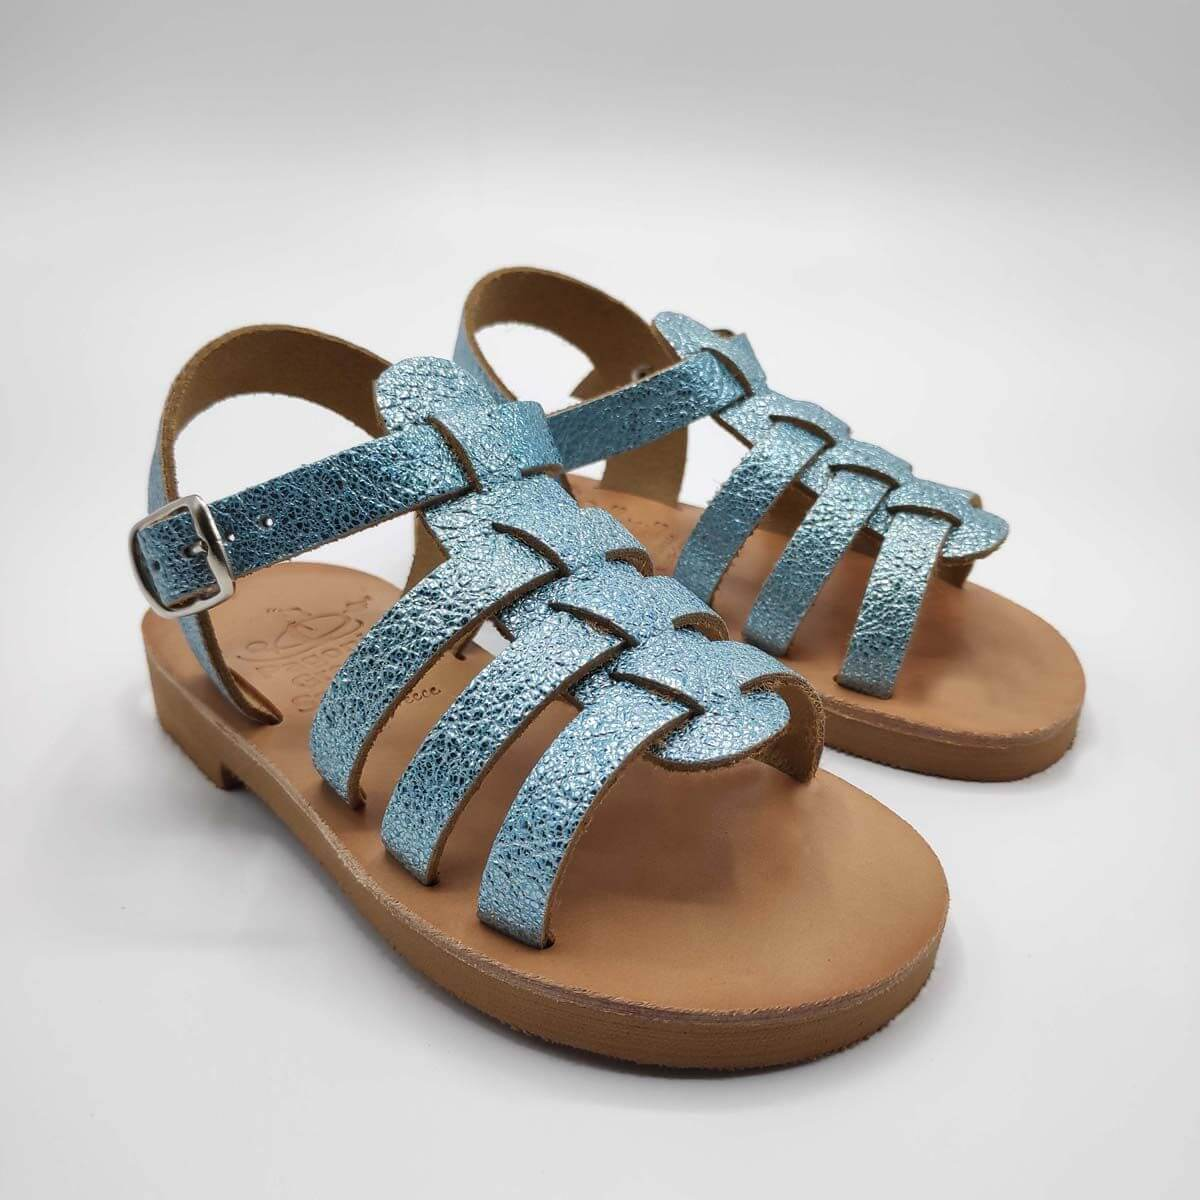 SERALI Kids gladiator sandals